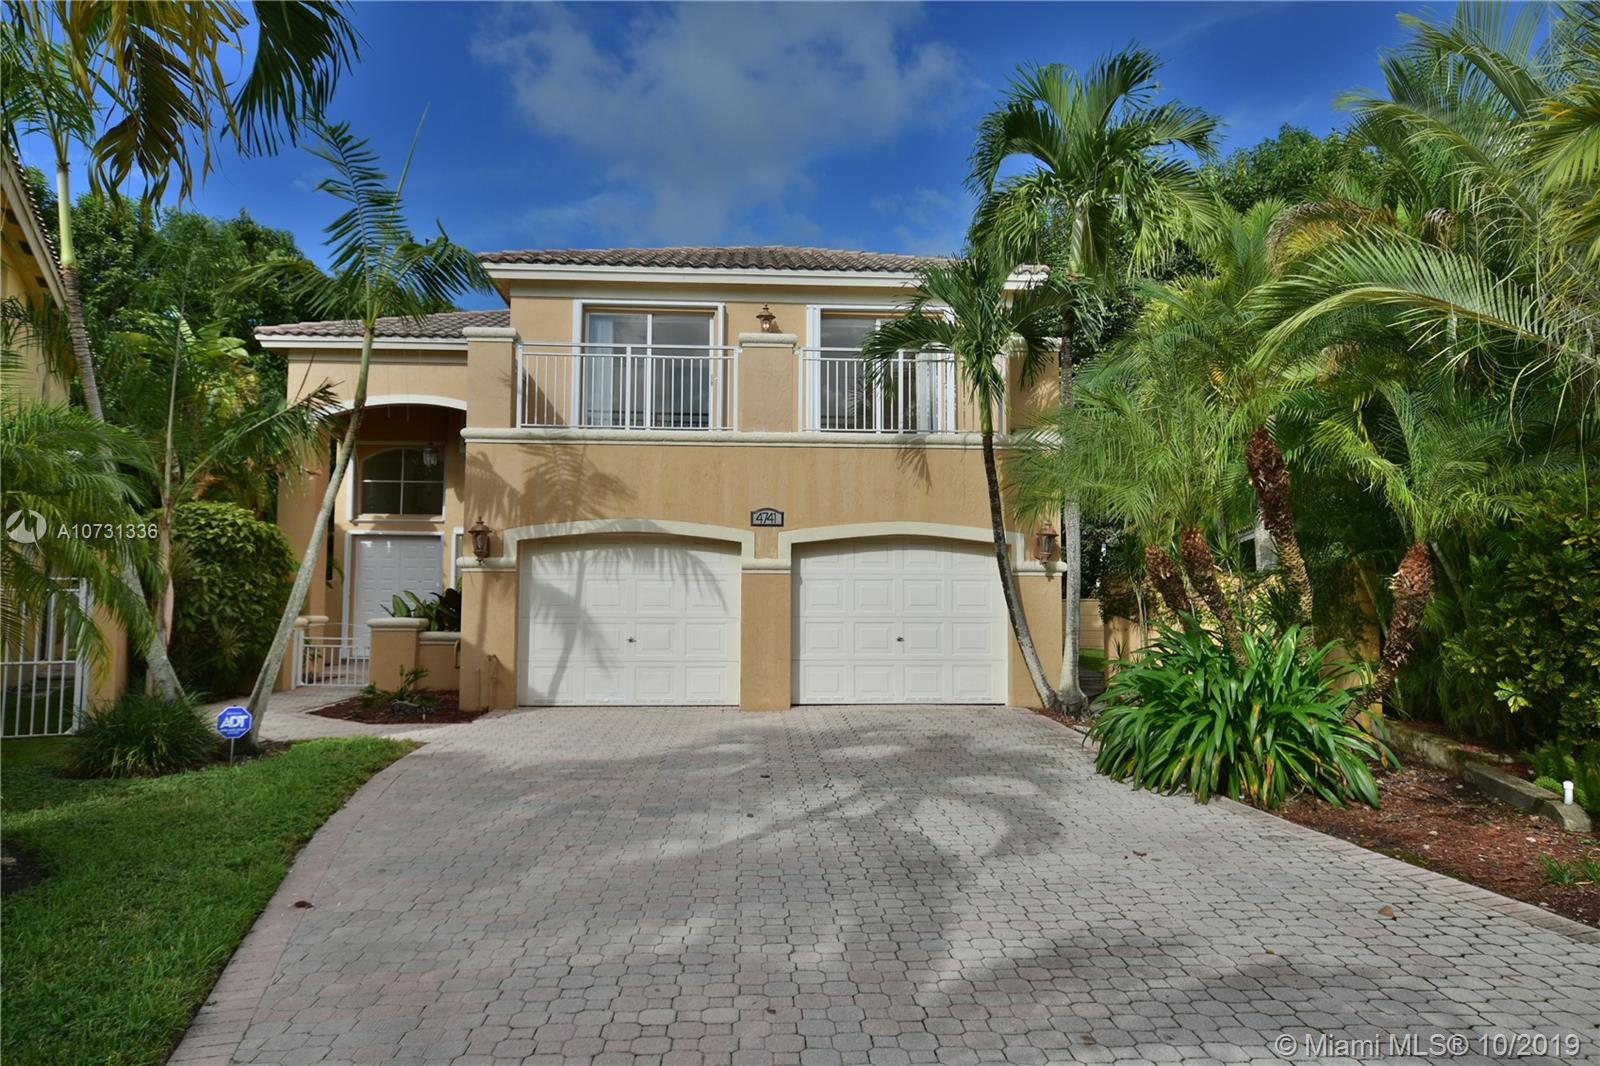 4741 NW 94th Ct  For Sale A10731336, FL